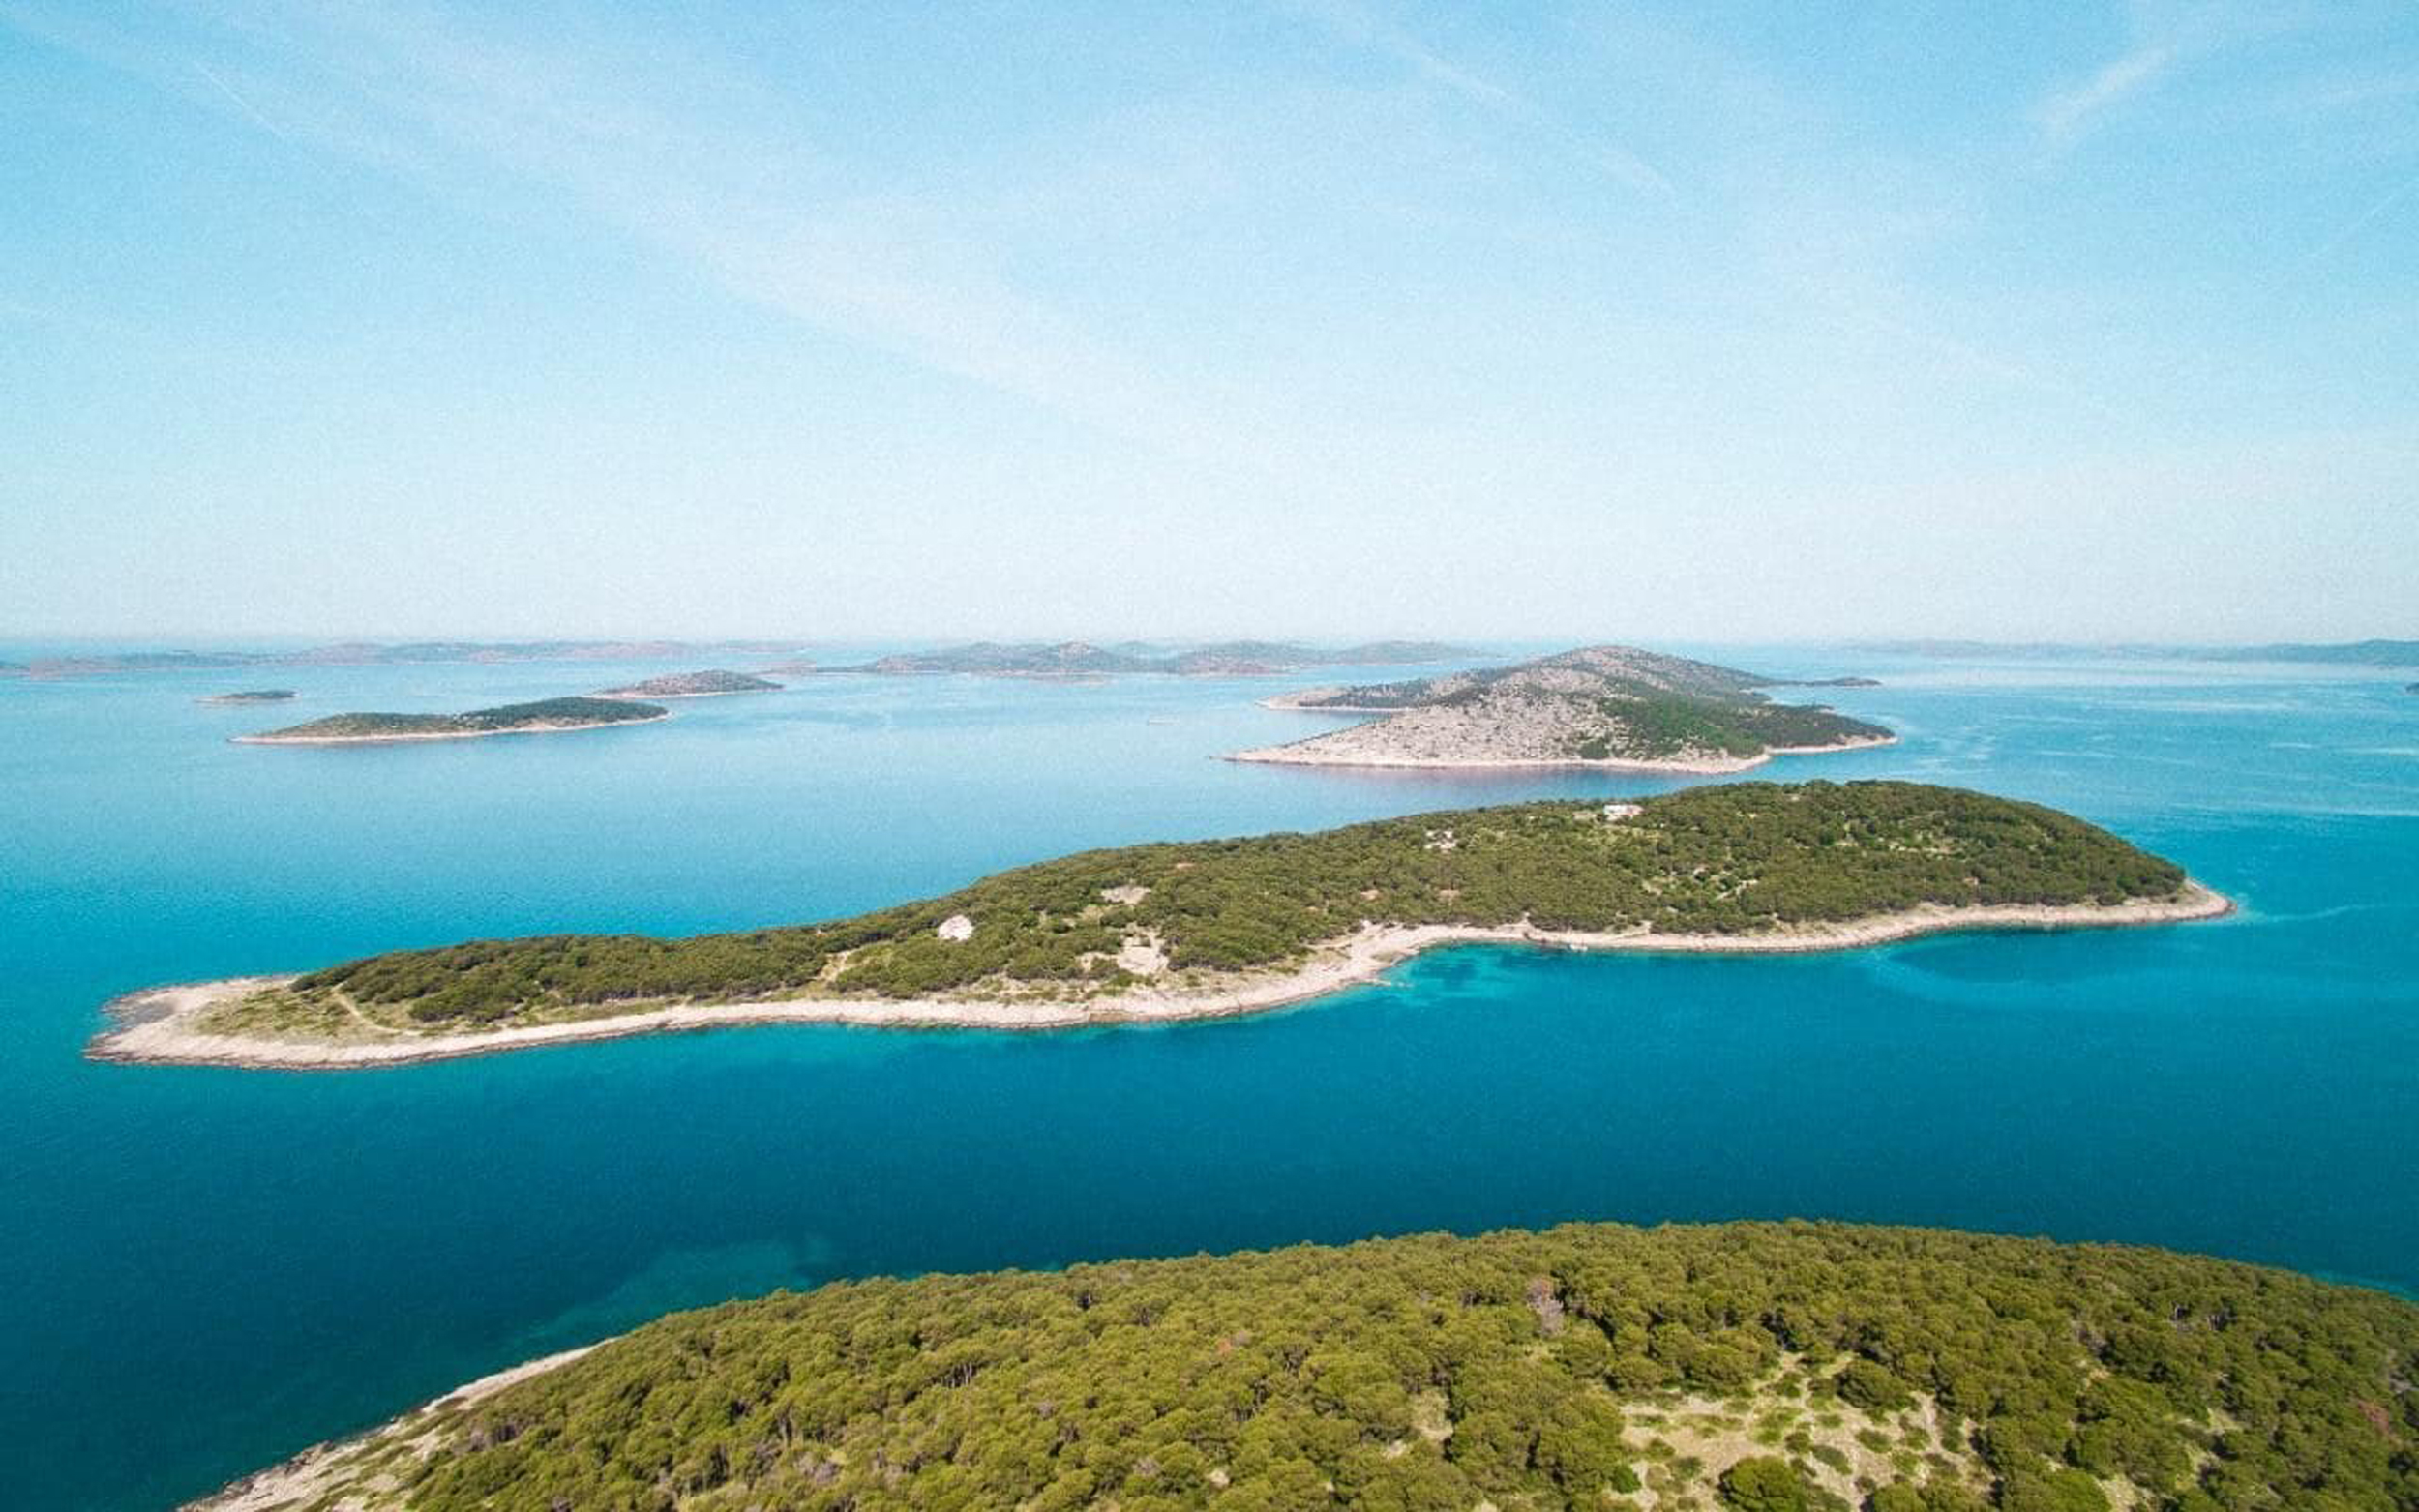 Obonjan Island: Land, Water, Air